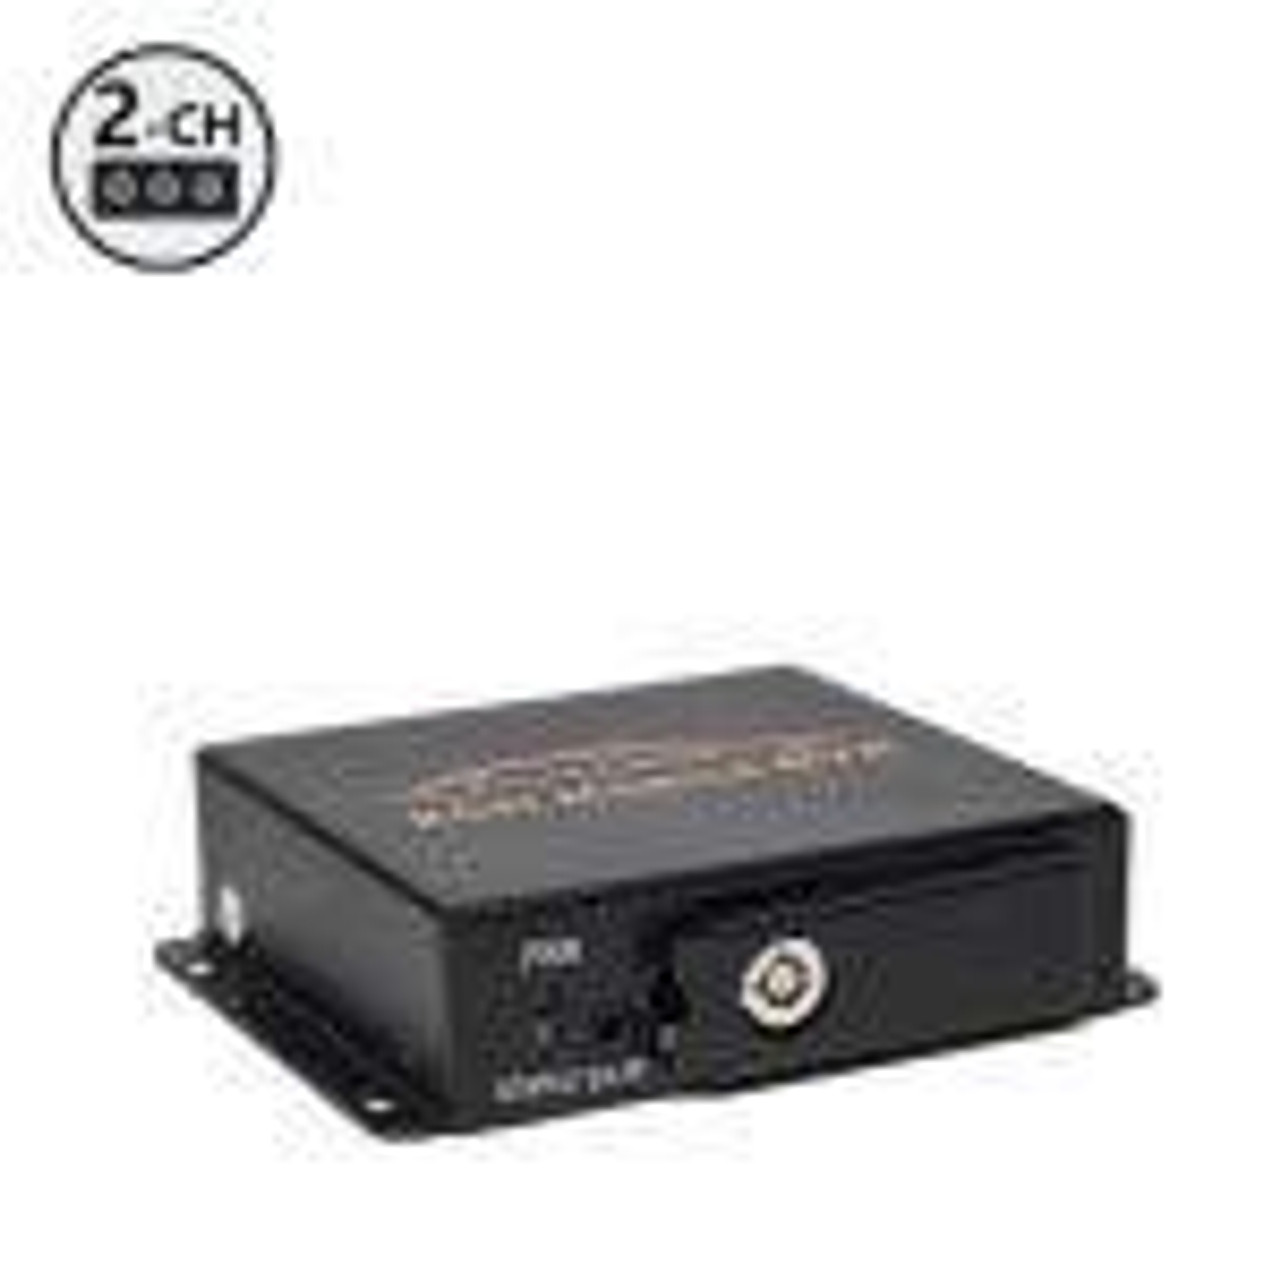 "Mobilemule™ 2100 | 2 Channel Mobile DVR, 9"" RCA Display"